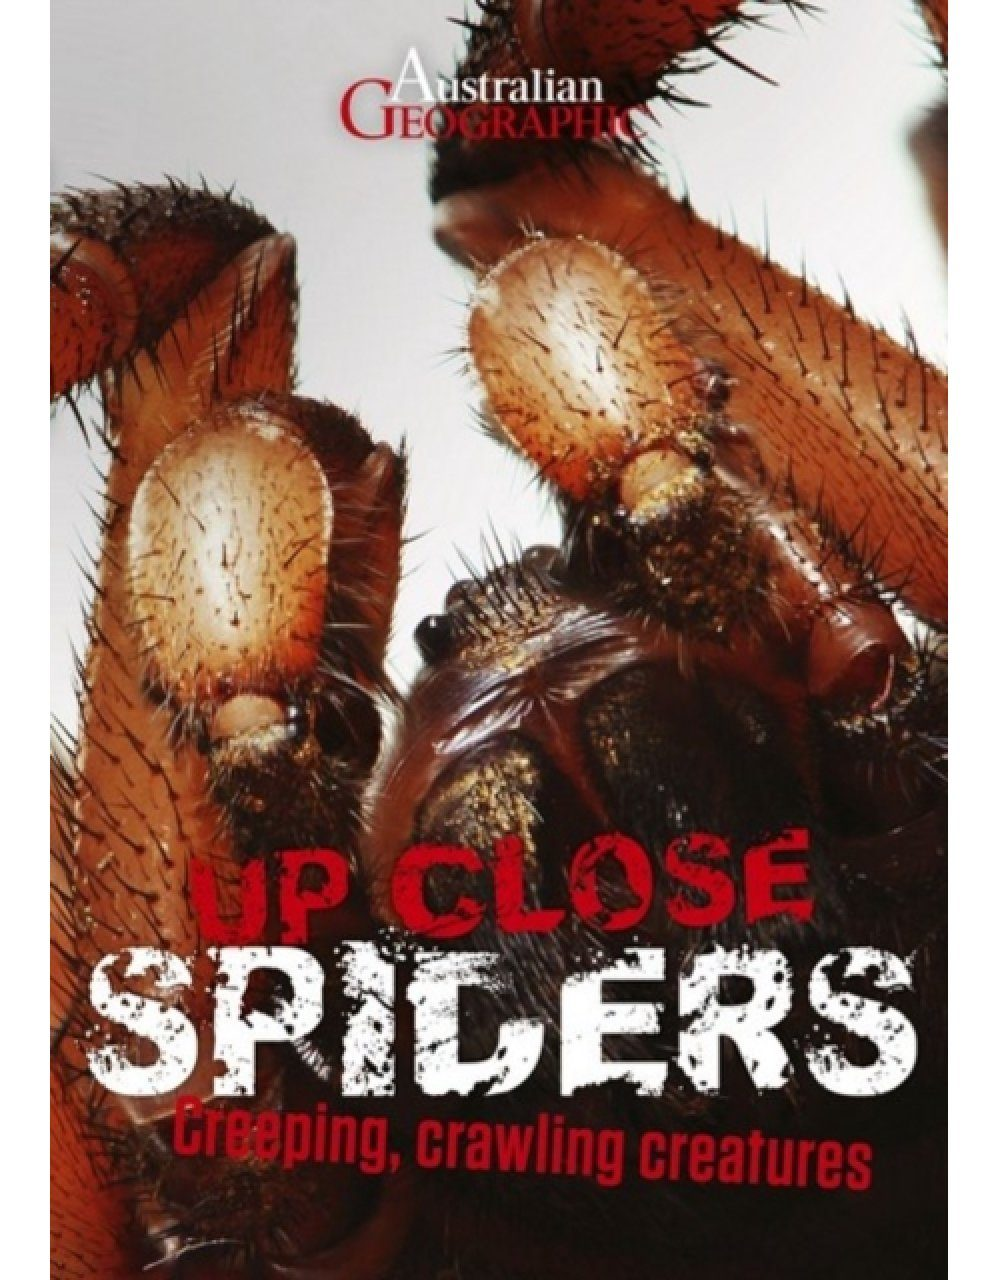 Australian Geographic Up Close: Spiders